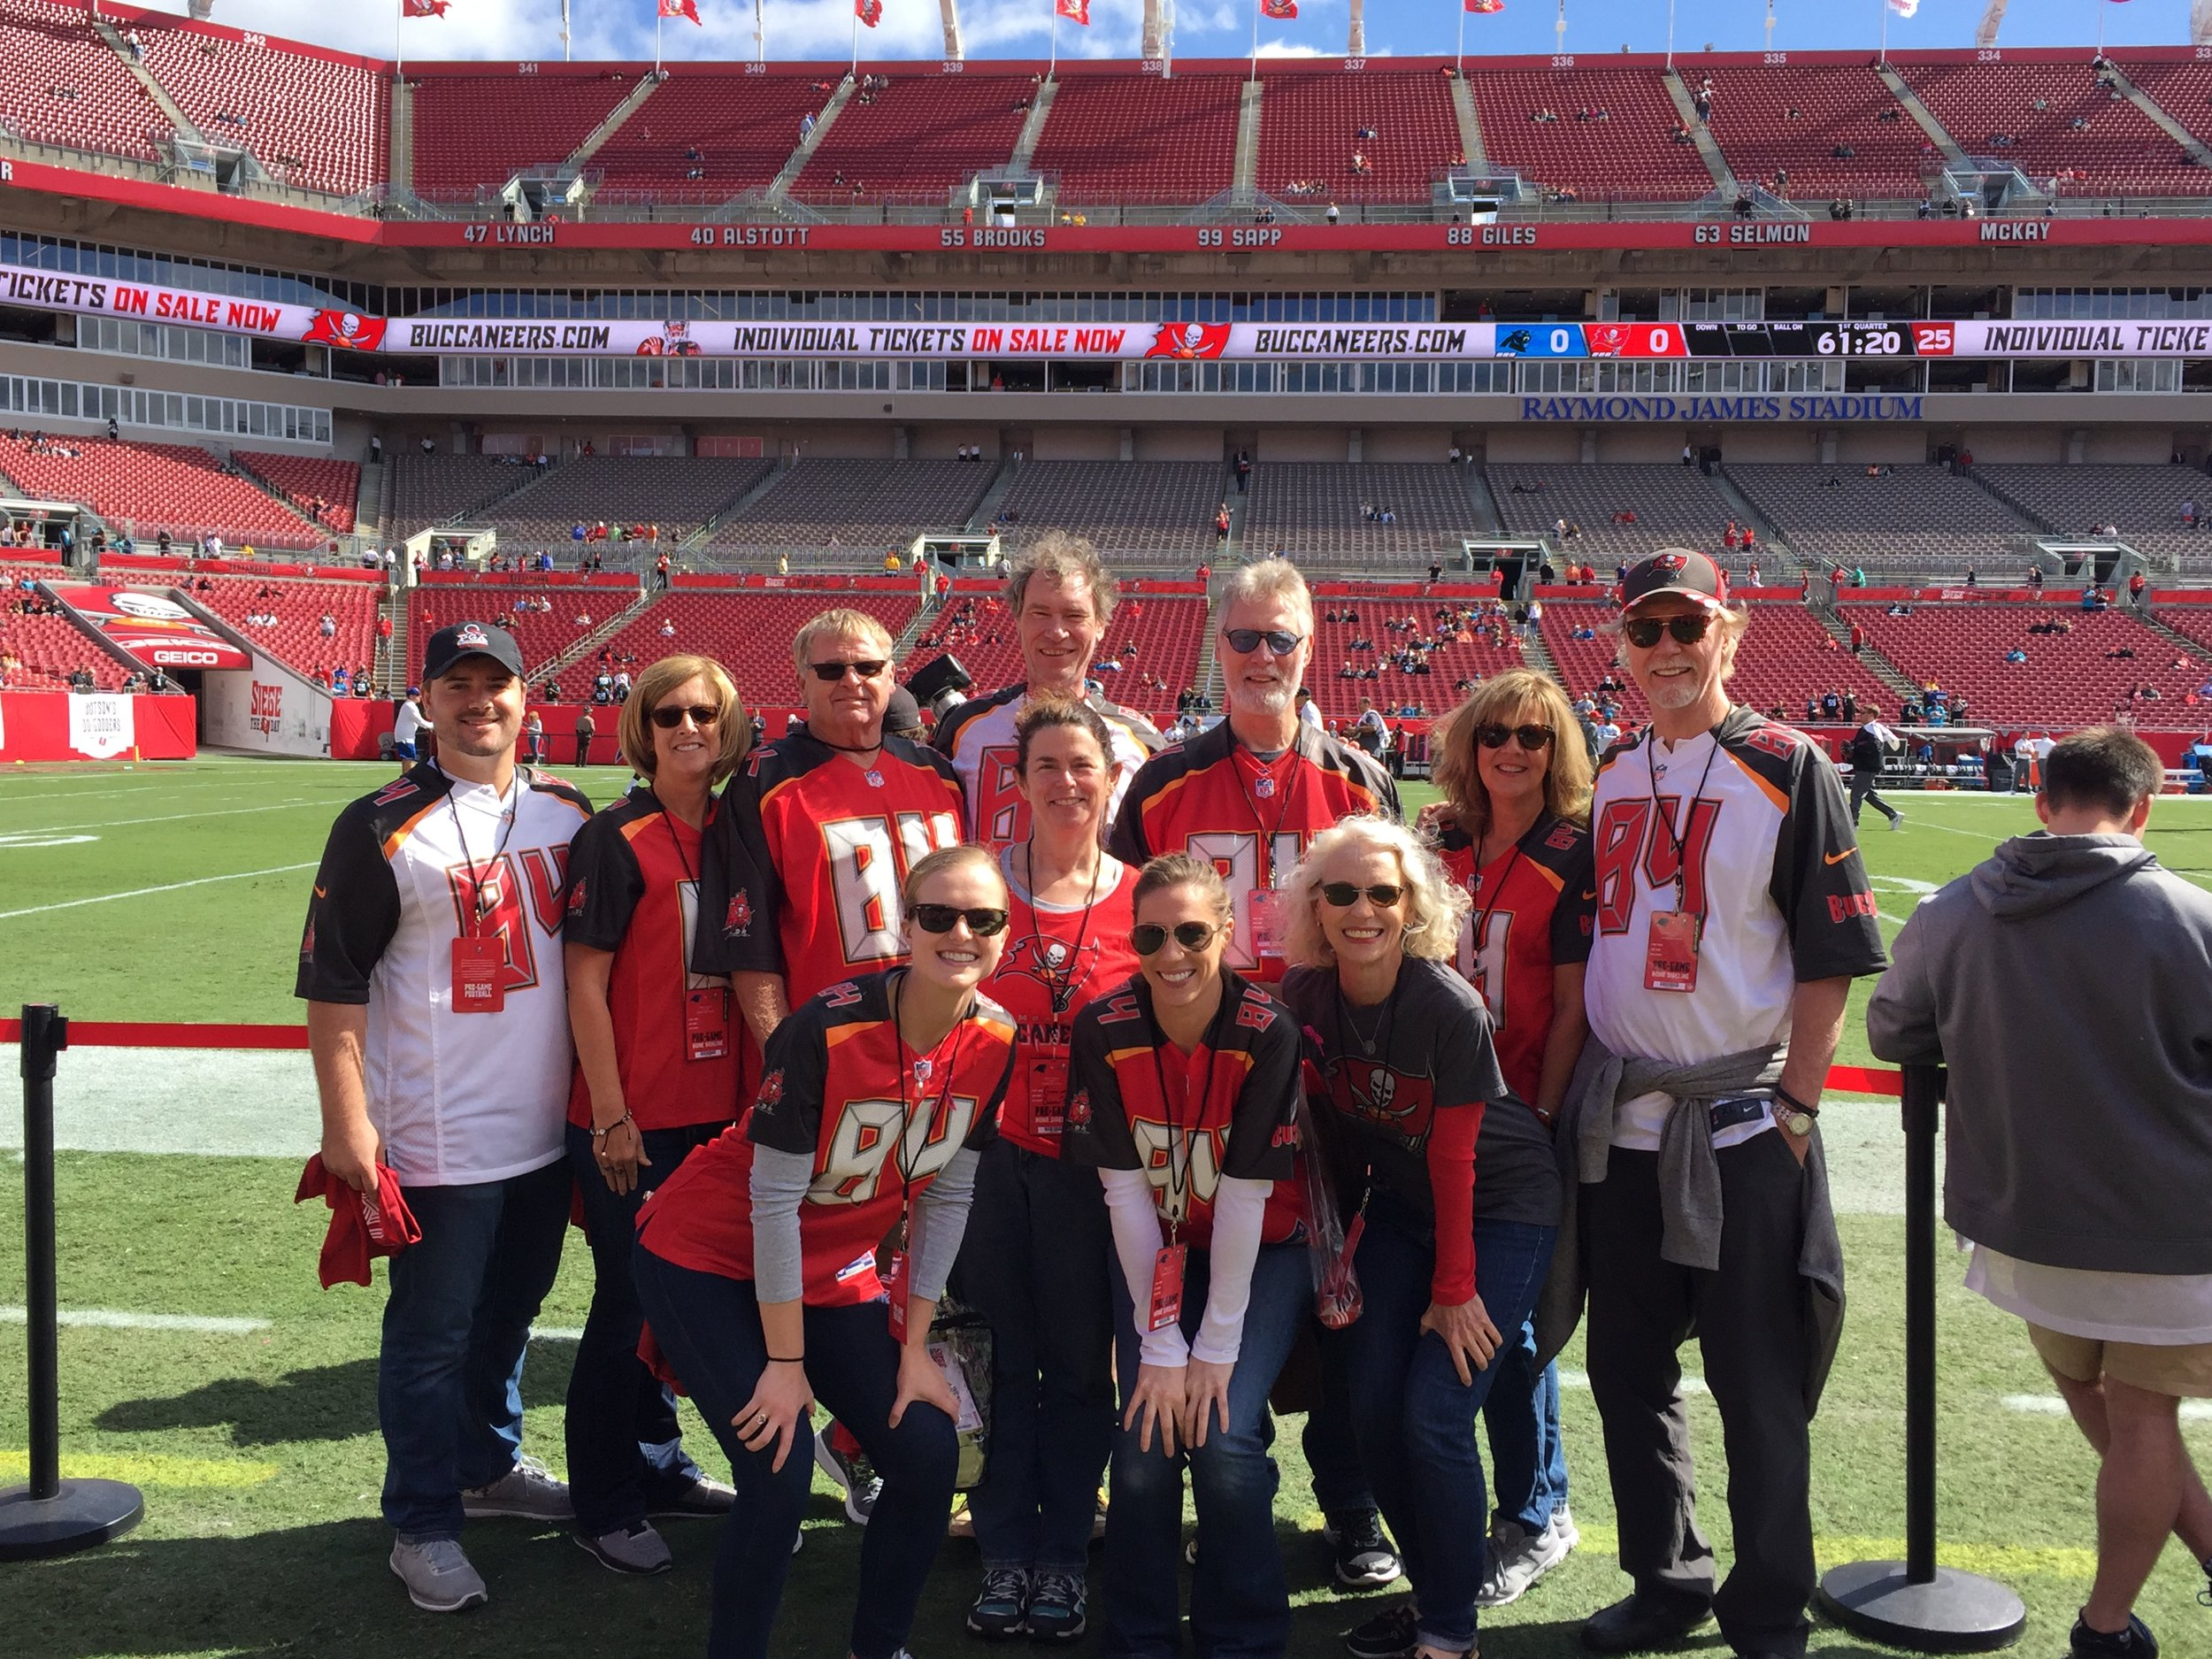 Back row left to right - cousins Jack, Susan and John Brate. Brothers Tom and Dave, sister-in-law Pat and brother Phil. Middle - sister-in-law Tracy. Front row - Keeley, niece Angela and me. Lots of #84 Brate jerseys!